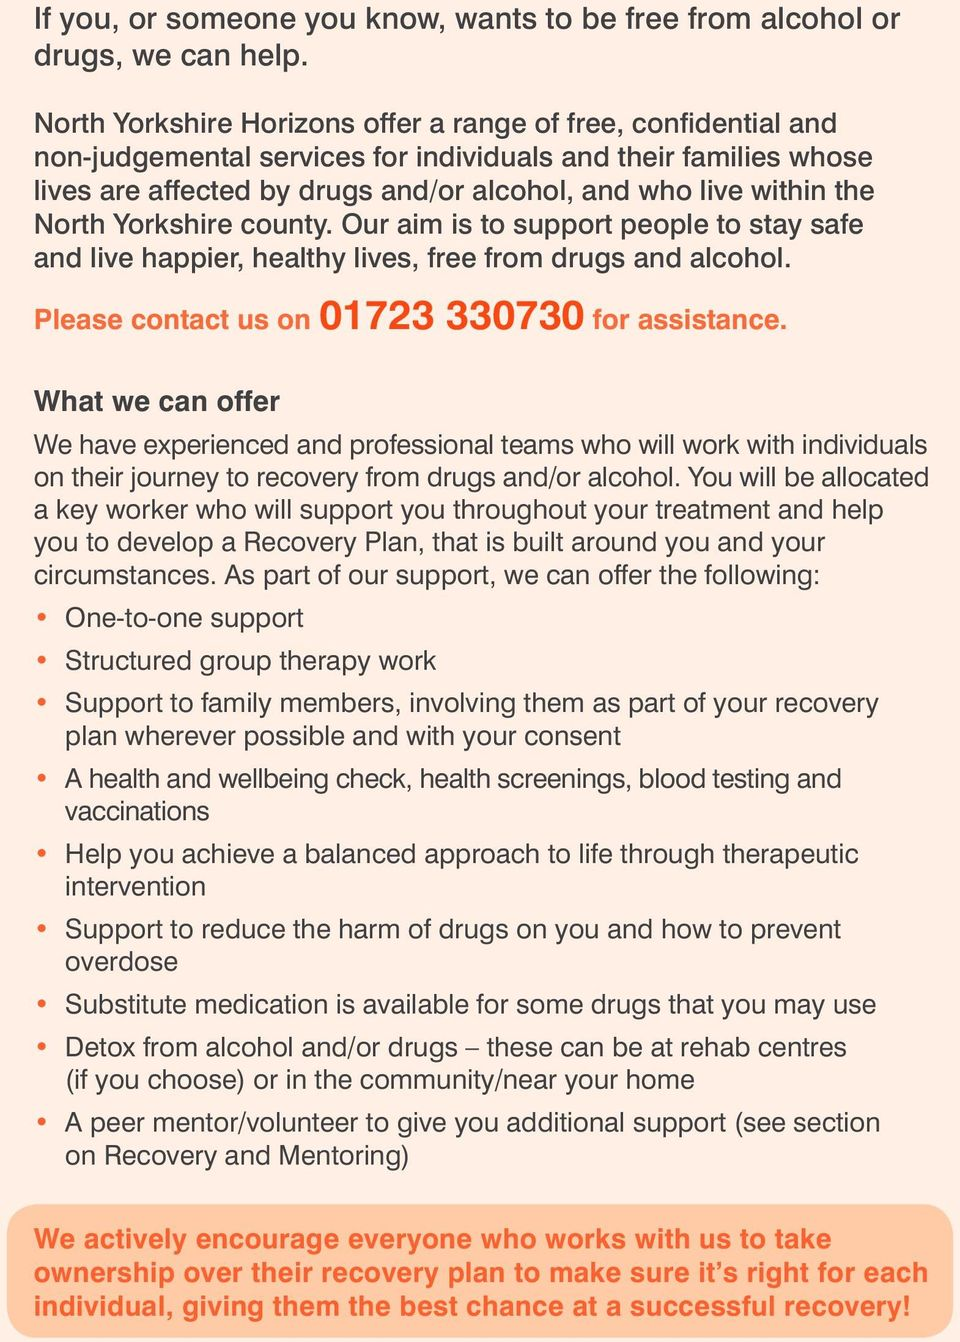 North Yorkshire county. Our aim is to support people to stay safe and live happier, healthy lives, free from drugs and alcohol. Please contact us on 01723 330730 for assistance.